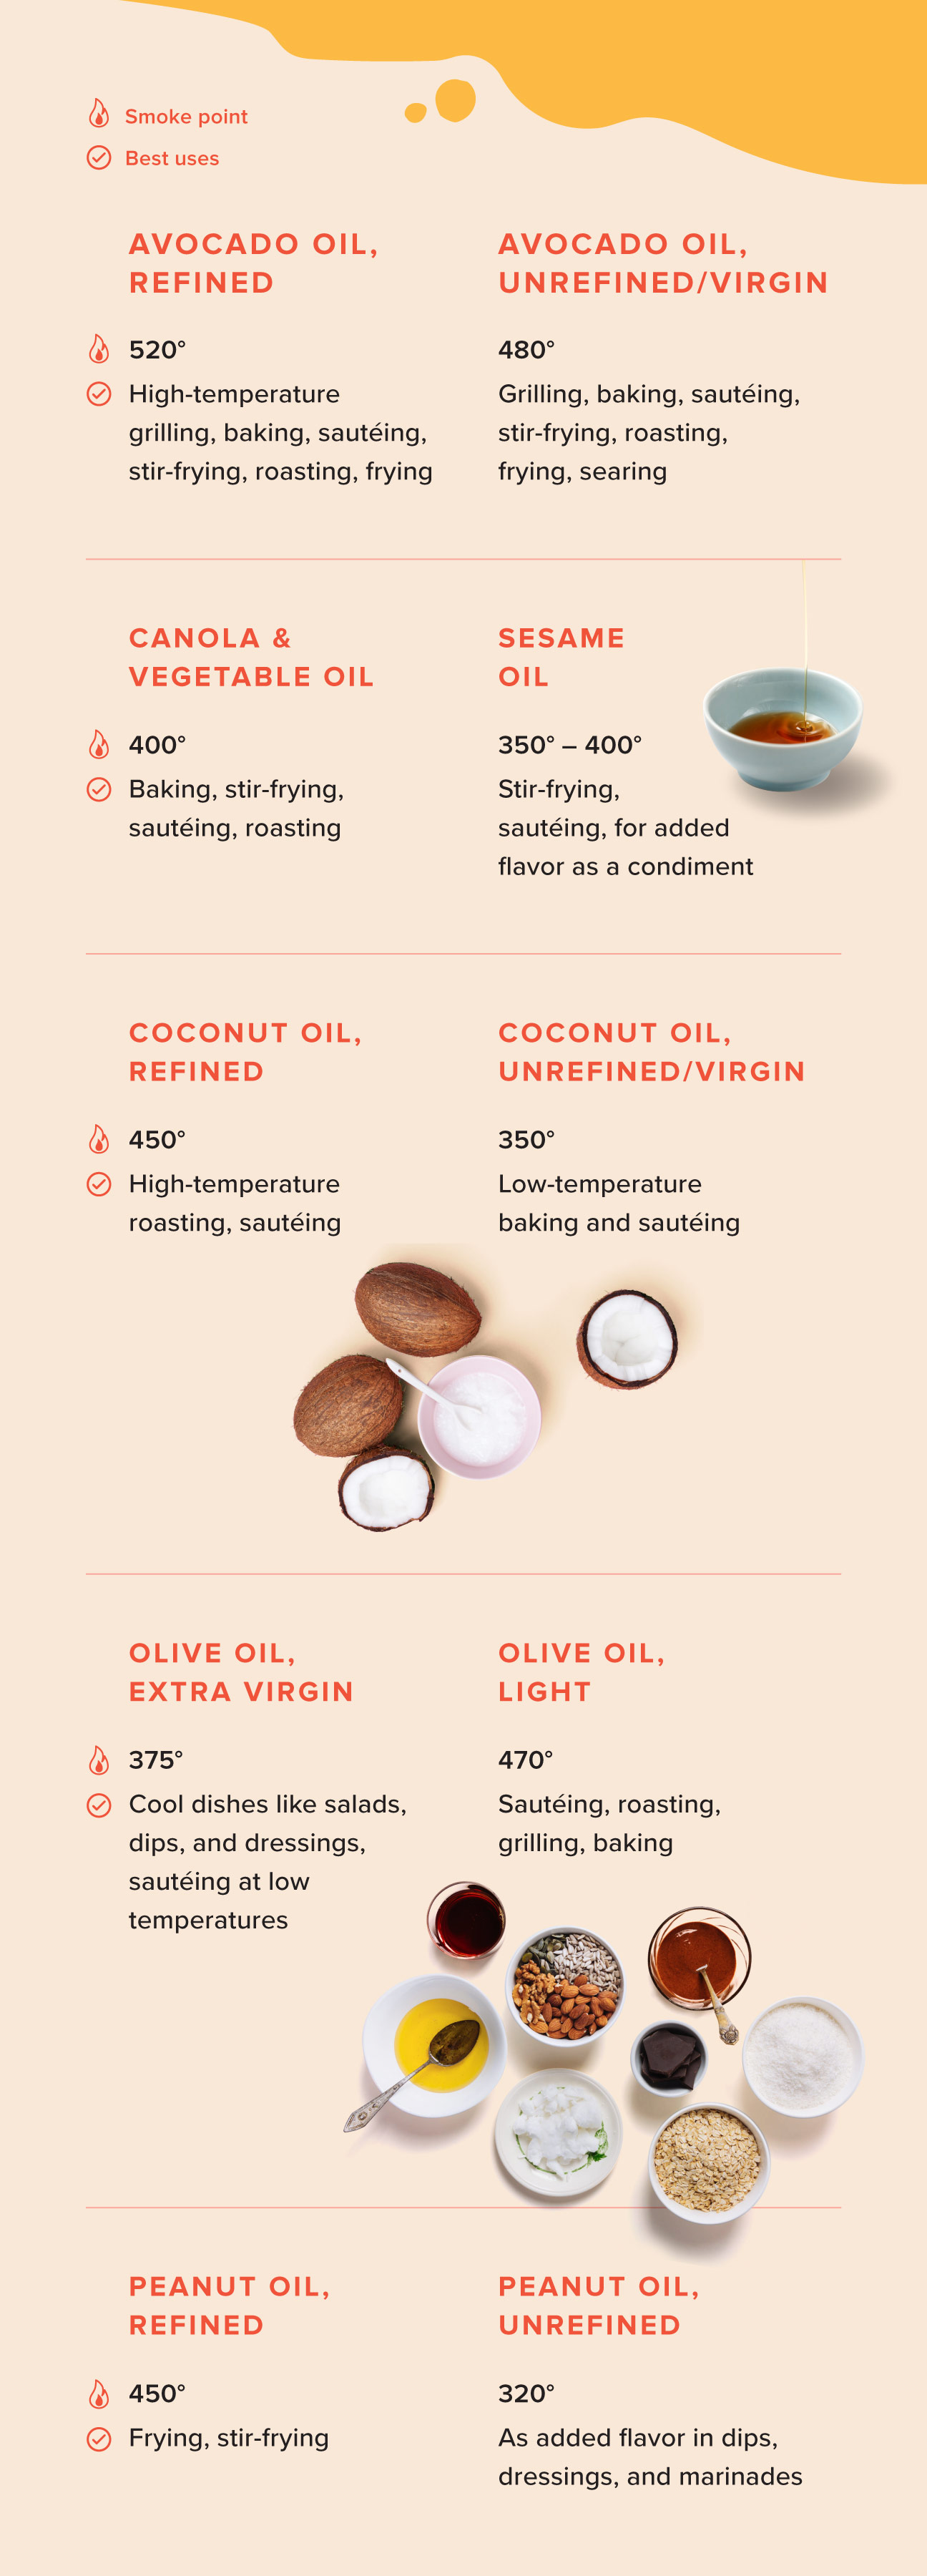 Complete Guide to Cooking Oils: Health Benefits, Best Uses, and More